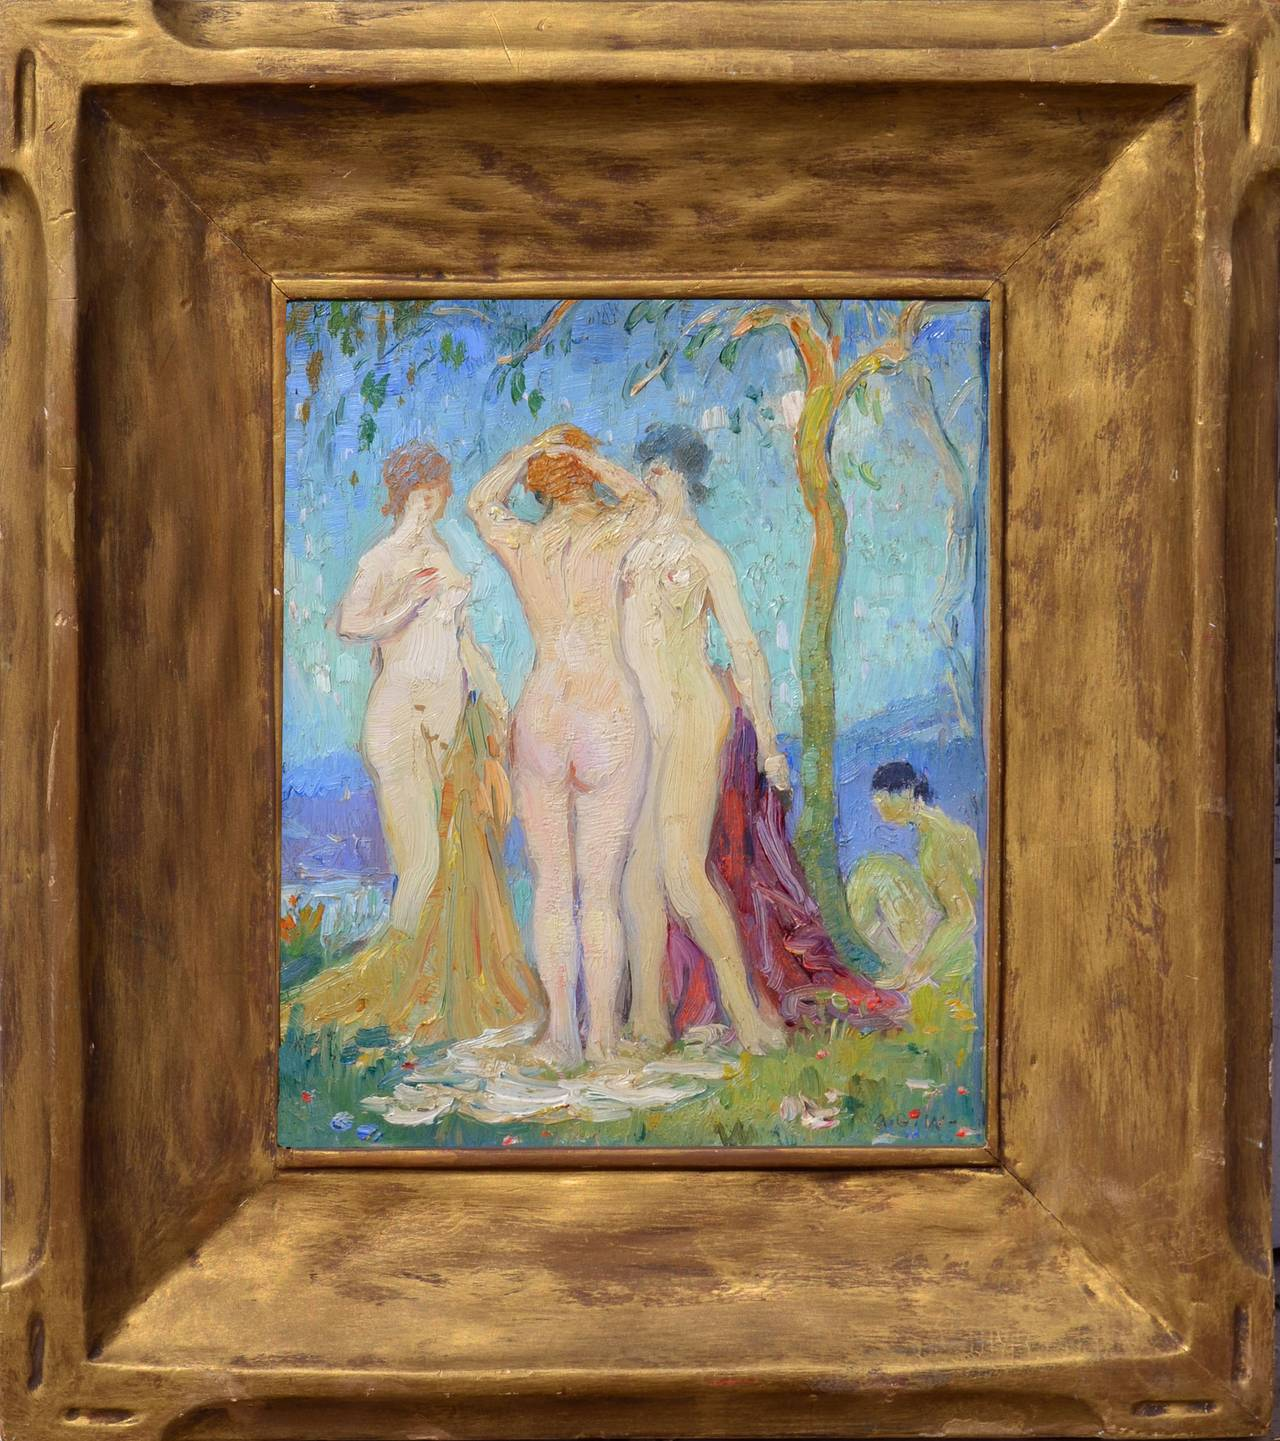 Abel Warshawsky Figurative Painting - Nudes in the Garden, France C. 1929